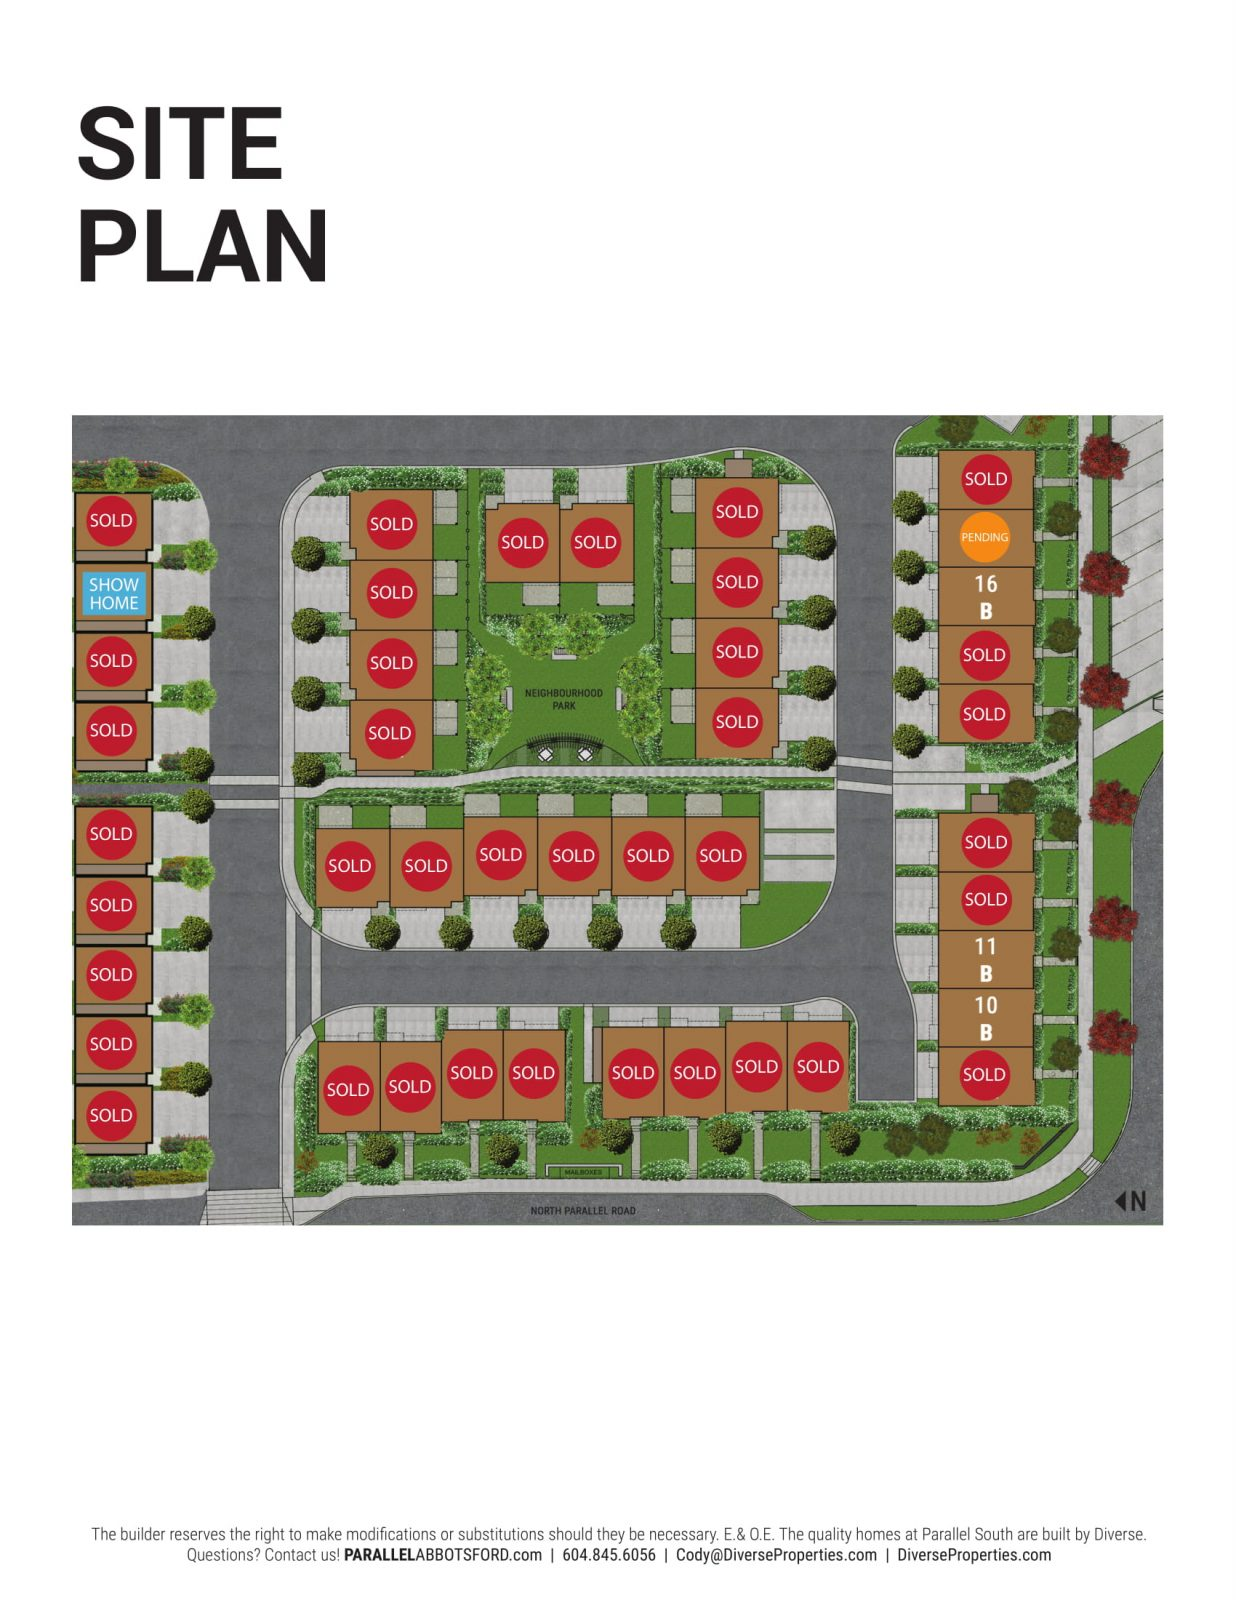 Diverse_ParallelSouth_Siteplan-1